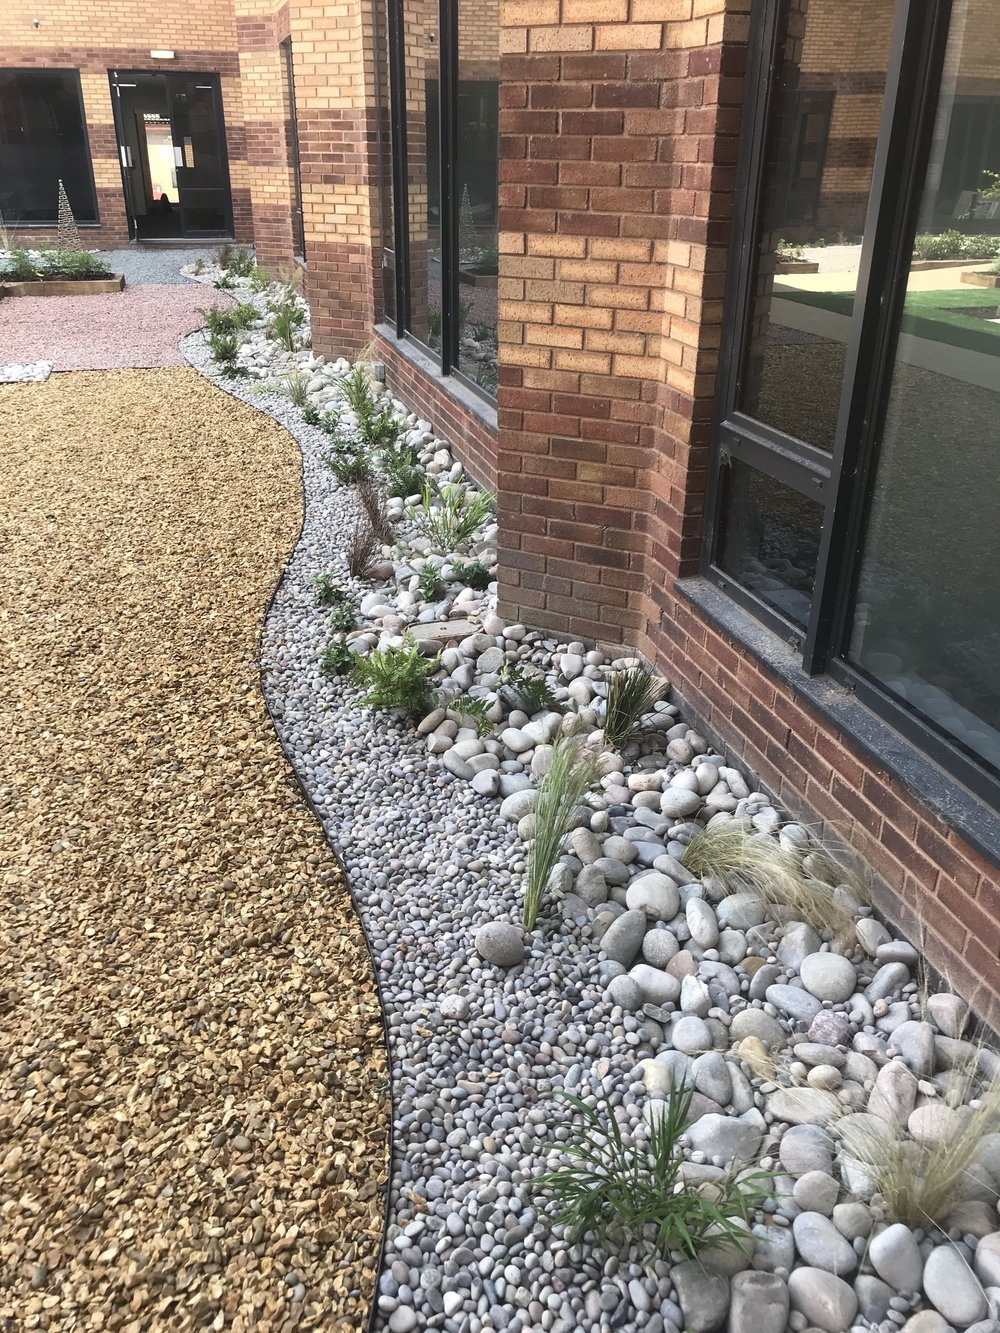 Commercial landscaping in the community